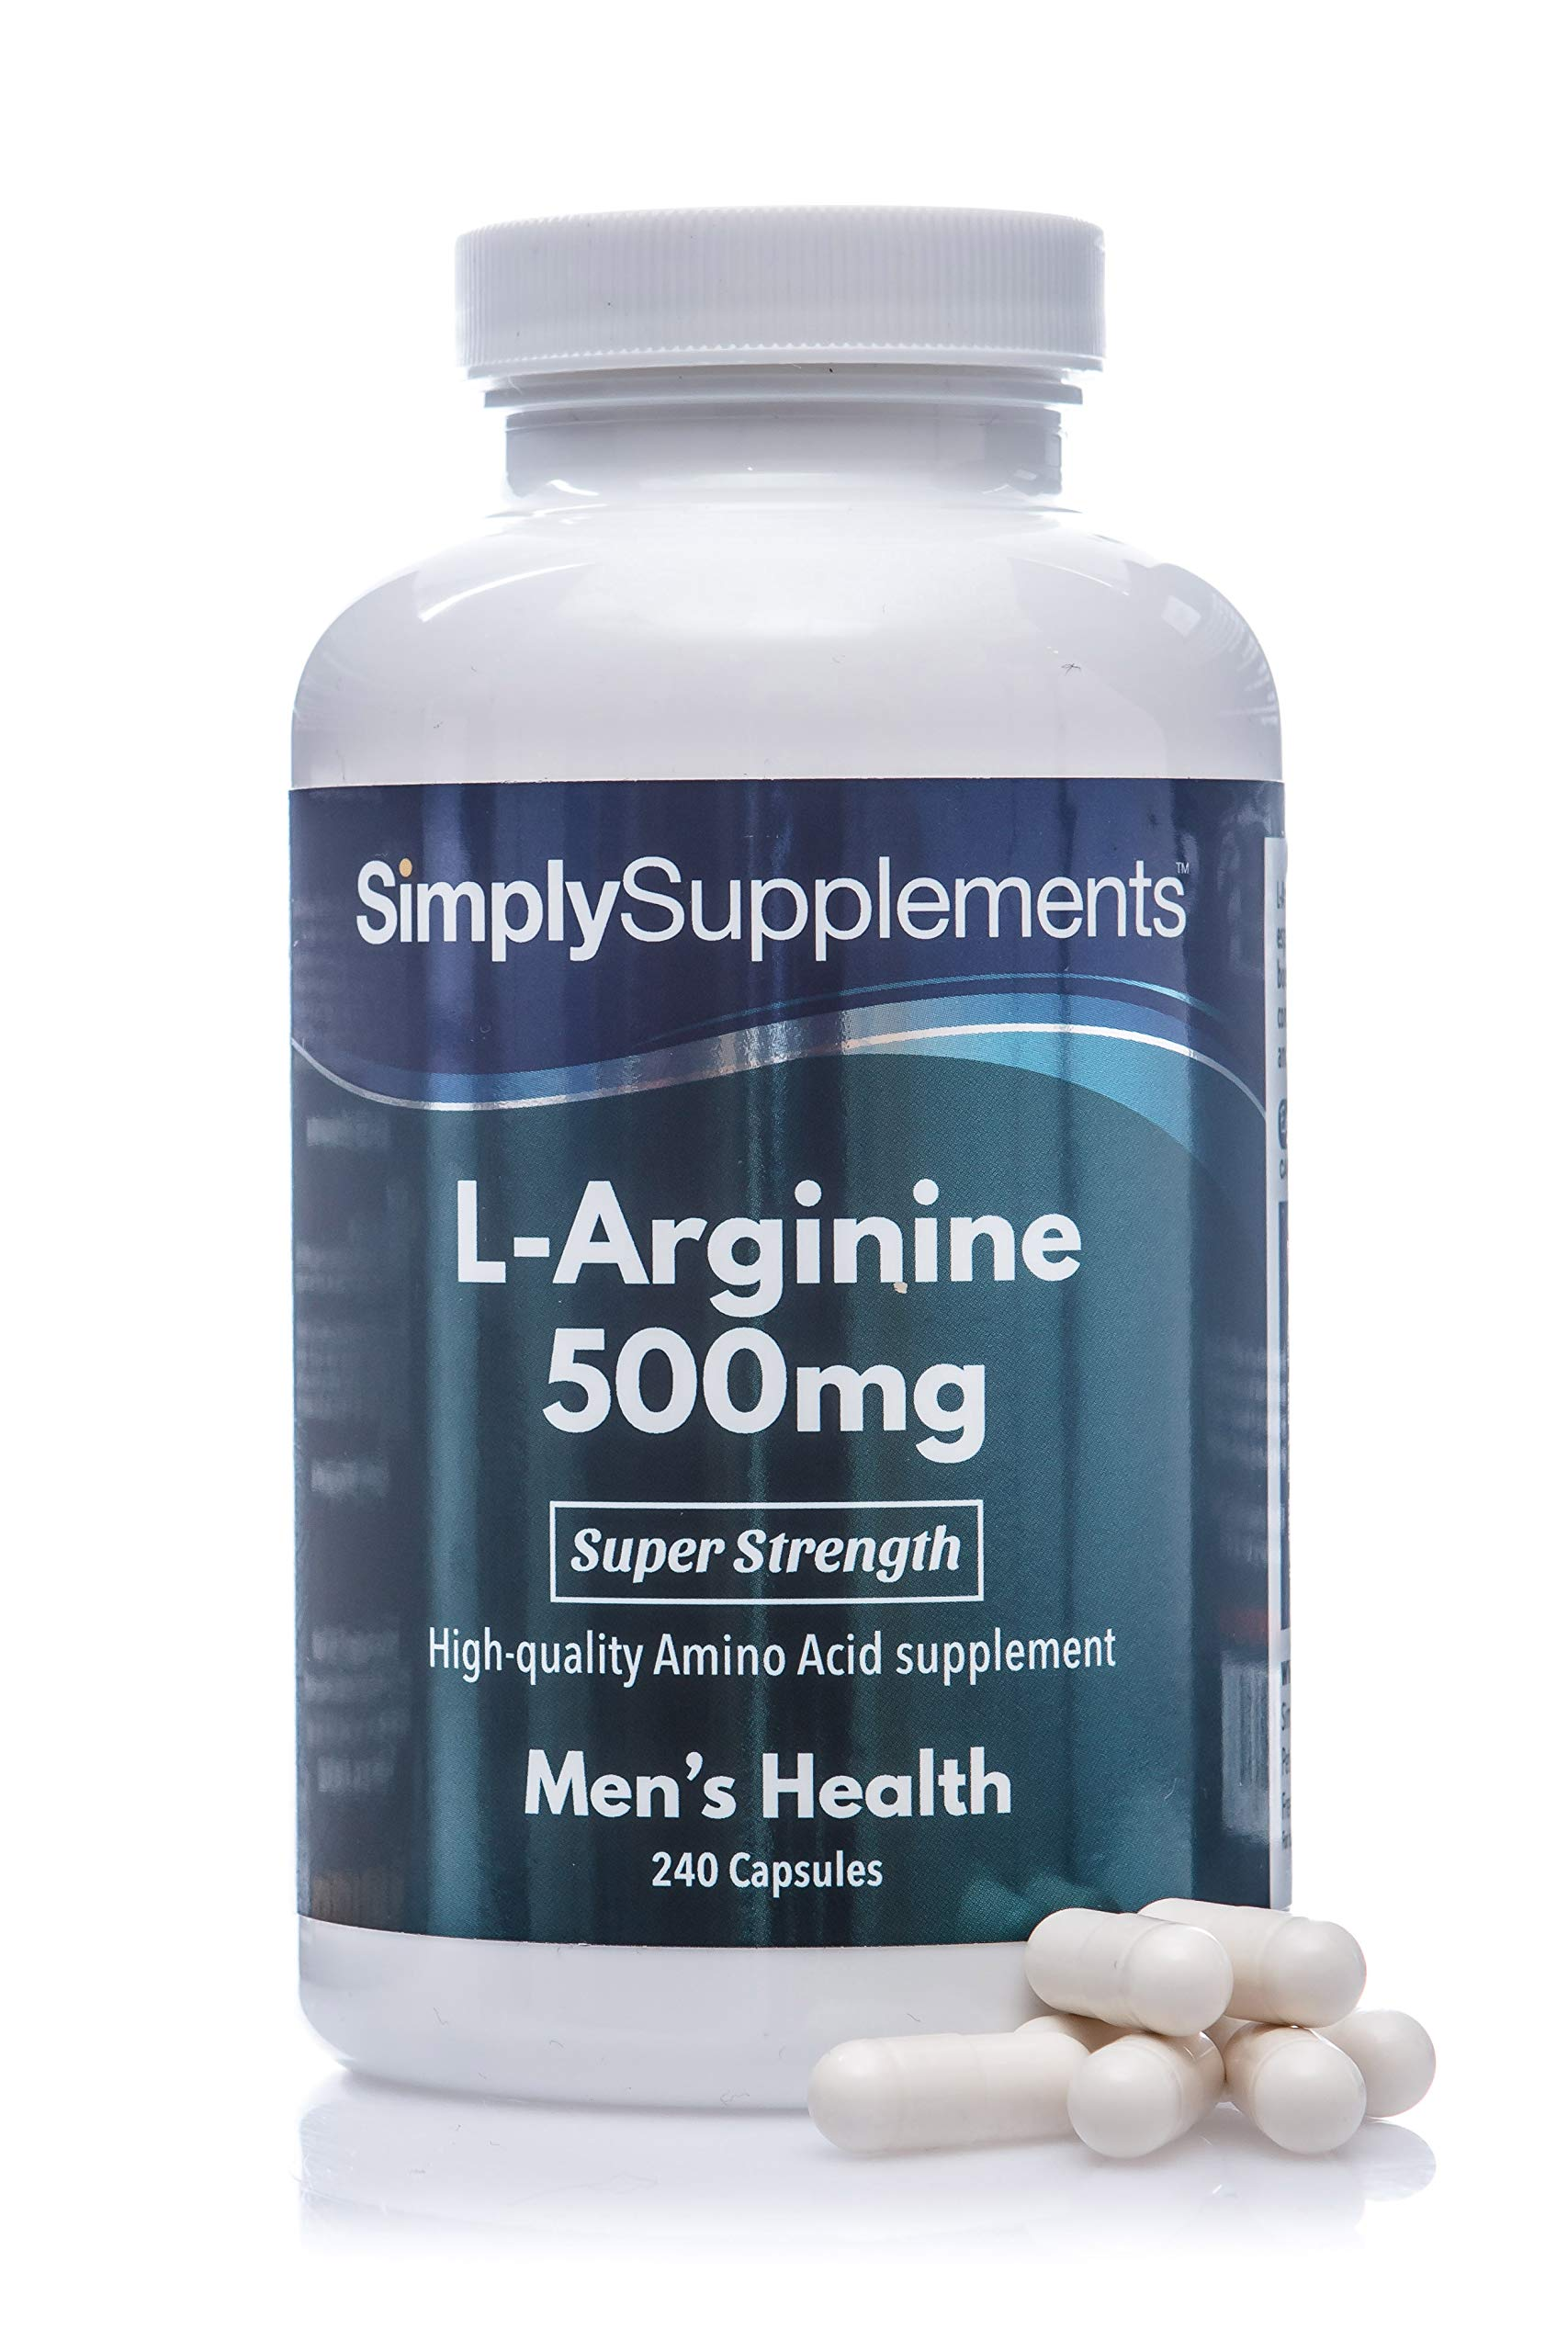 815ludUzbdL - L Arginine 500mg Capsules | High Strength Supplement Includes Iron to Reduce Tiredness & Fatigue | 240 Capsules = 80 Days Supply | Manufactured in The UK